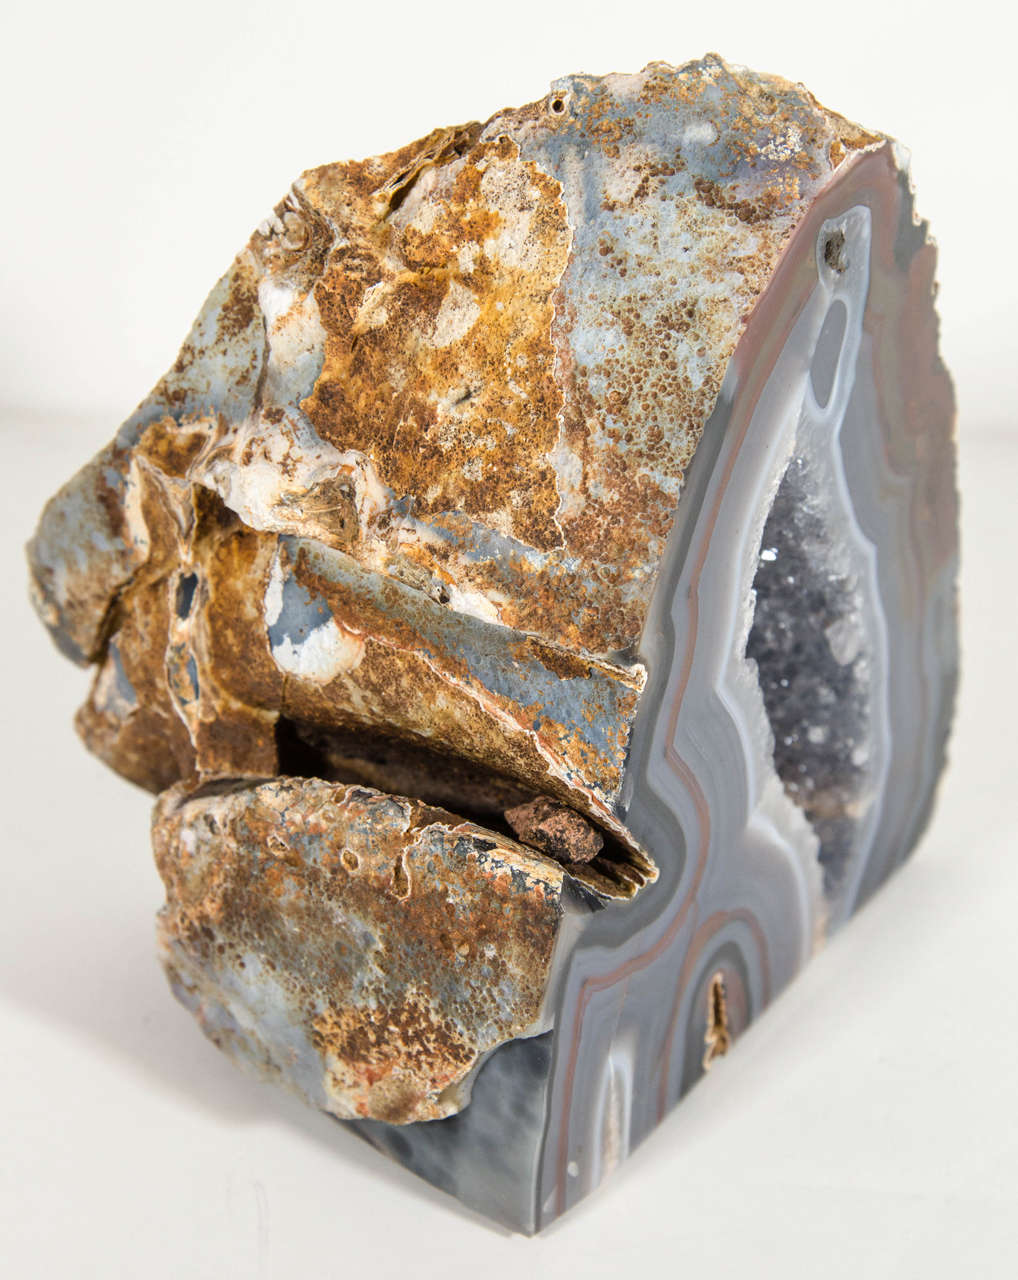 Gorgeous agate stone specimen sculpture with polished front and rough edges. The stone piece has variant hues of grey, browns and black tones with a grey fine crystalline center. Makes a great decorative object or as a bookend.